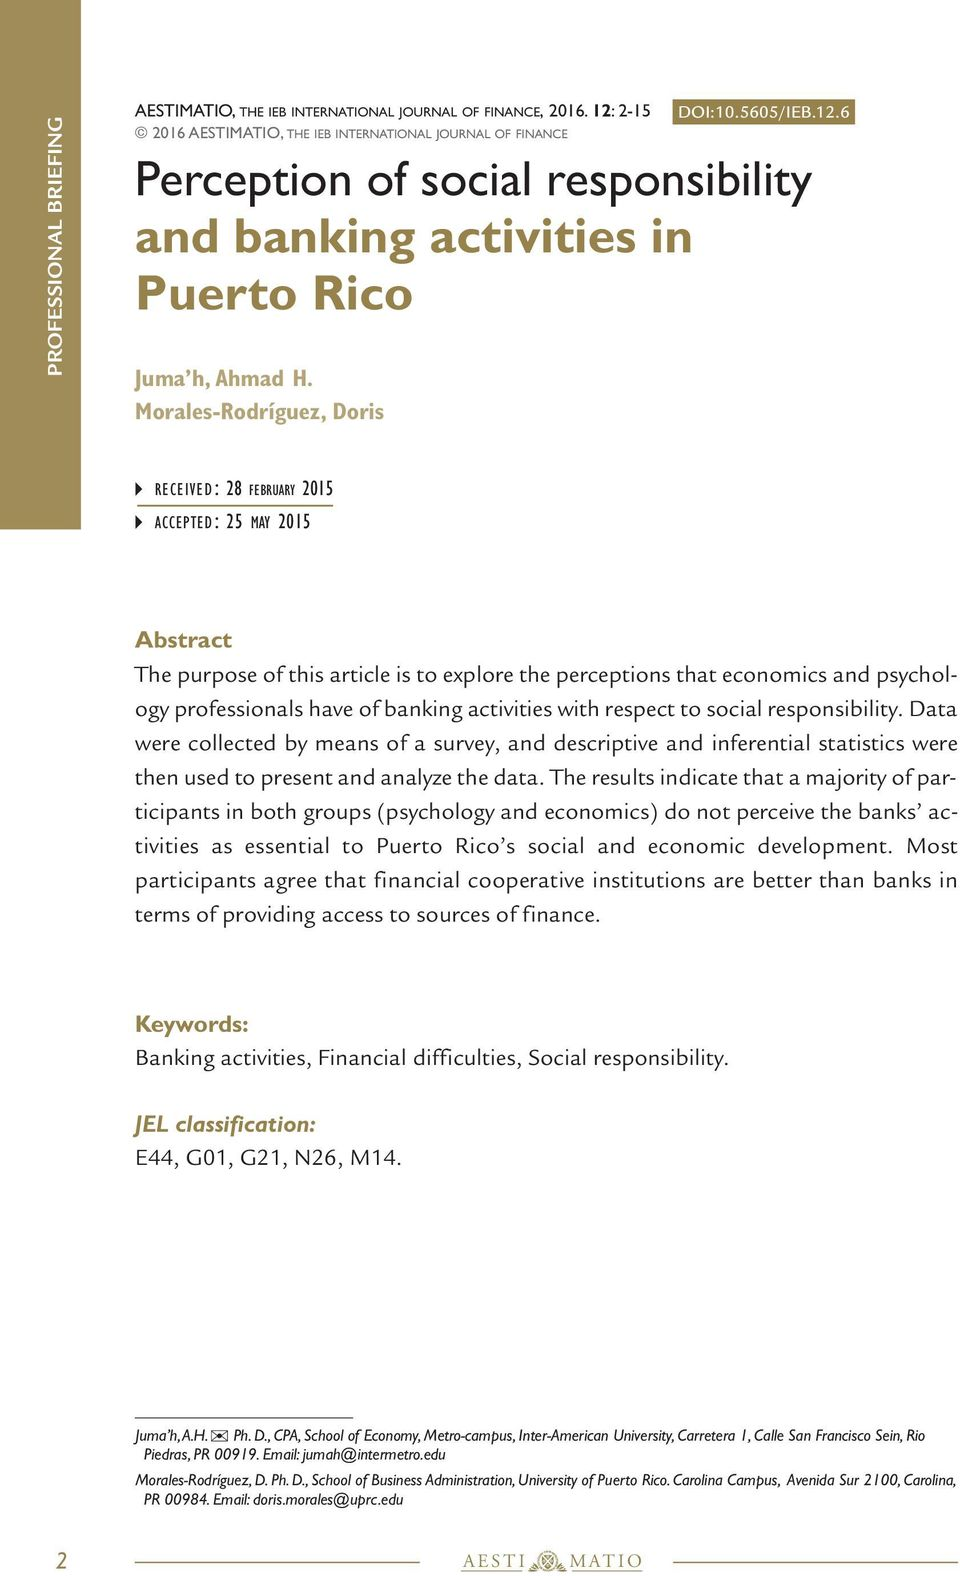 6 RECEIVED : 28 FEBRUARY 2015 ACCEPTED : 25 MAY 2015 Abstract The purpose of this article is to explore the perceptions that economics and psychology professionals have of banking activities with